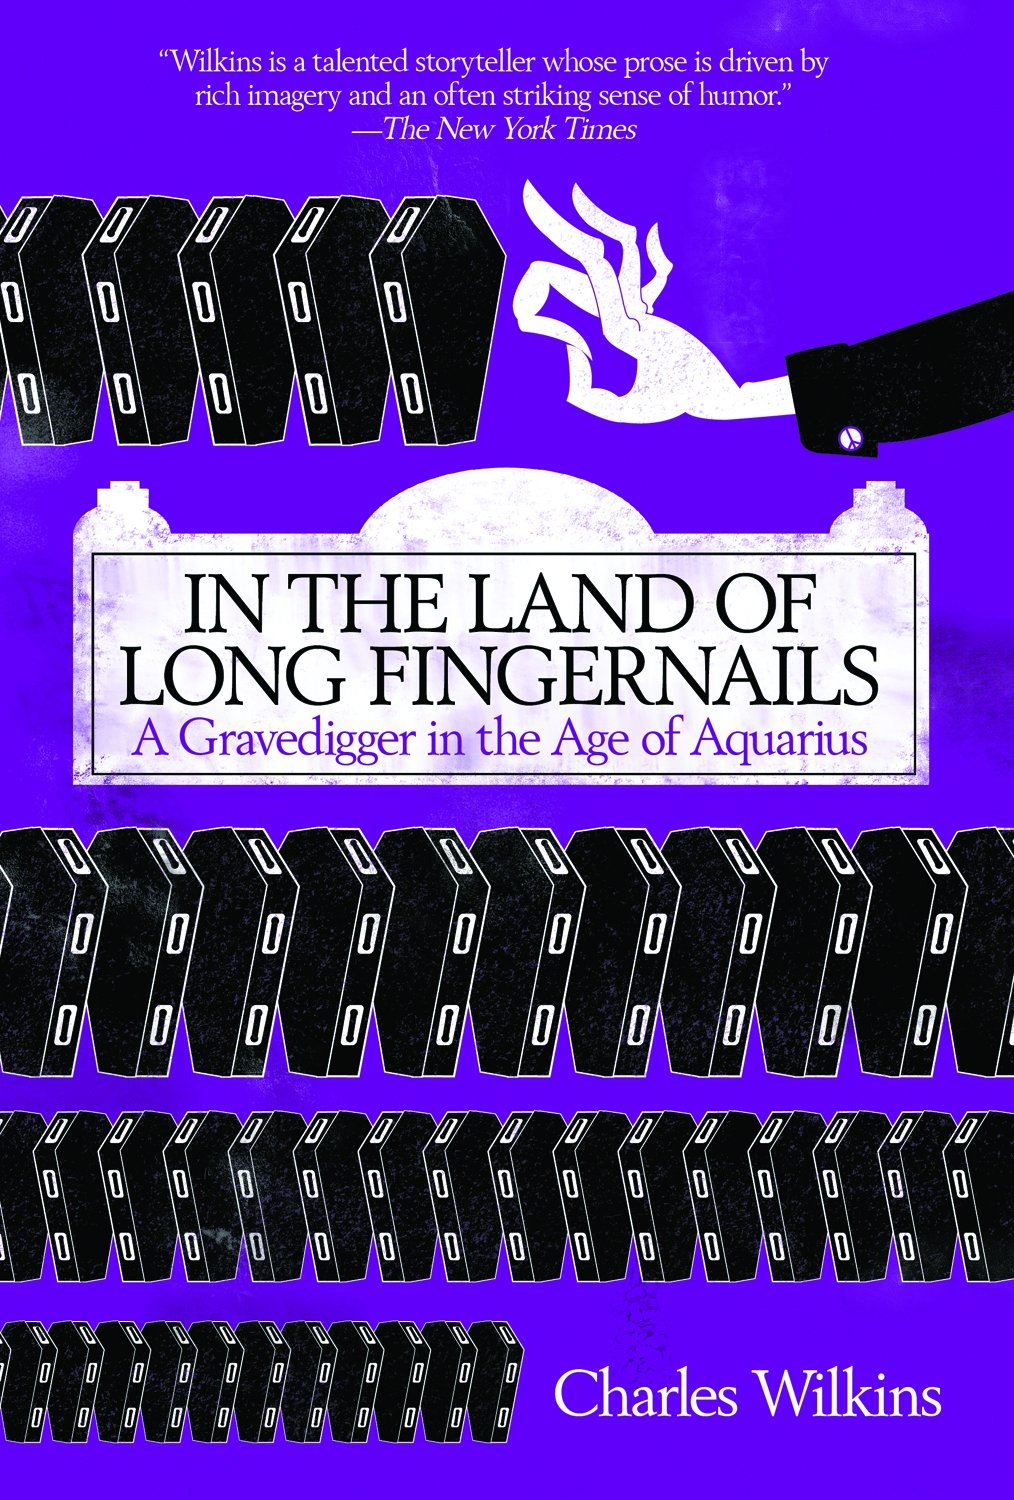 In The Land Of Long Fingernails: A Gravedigger in the Age of Aquarius